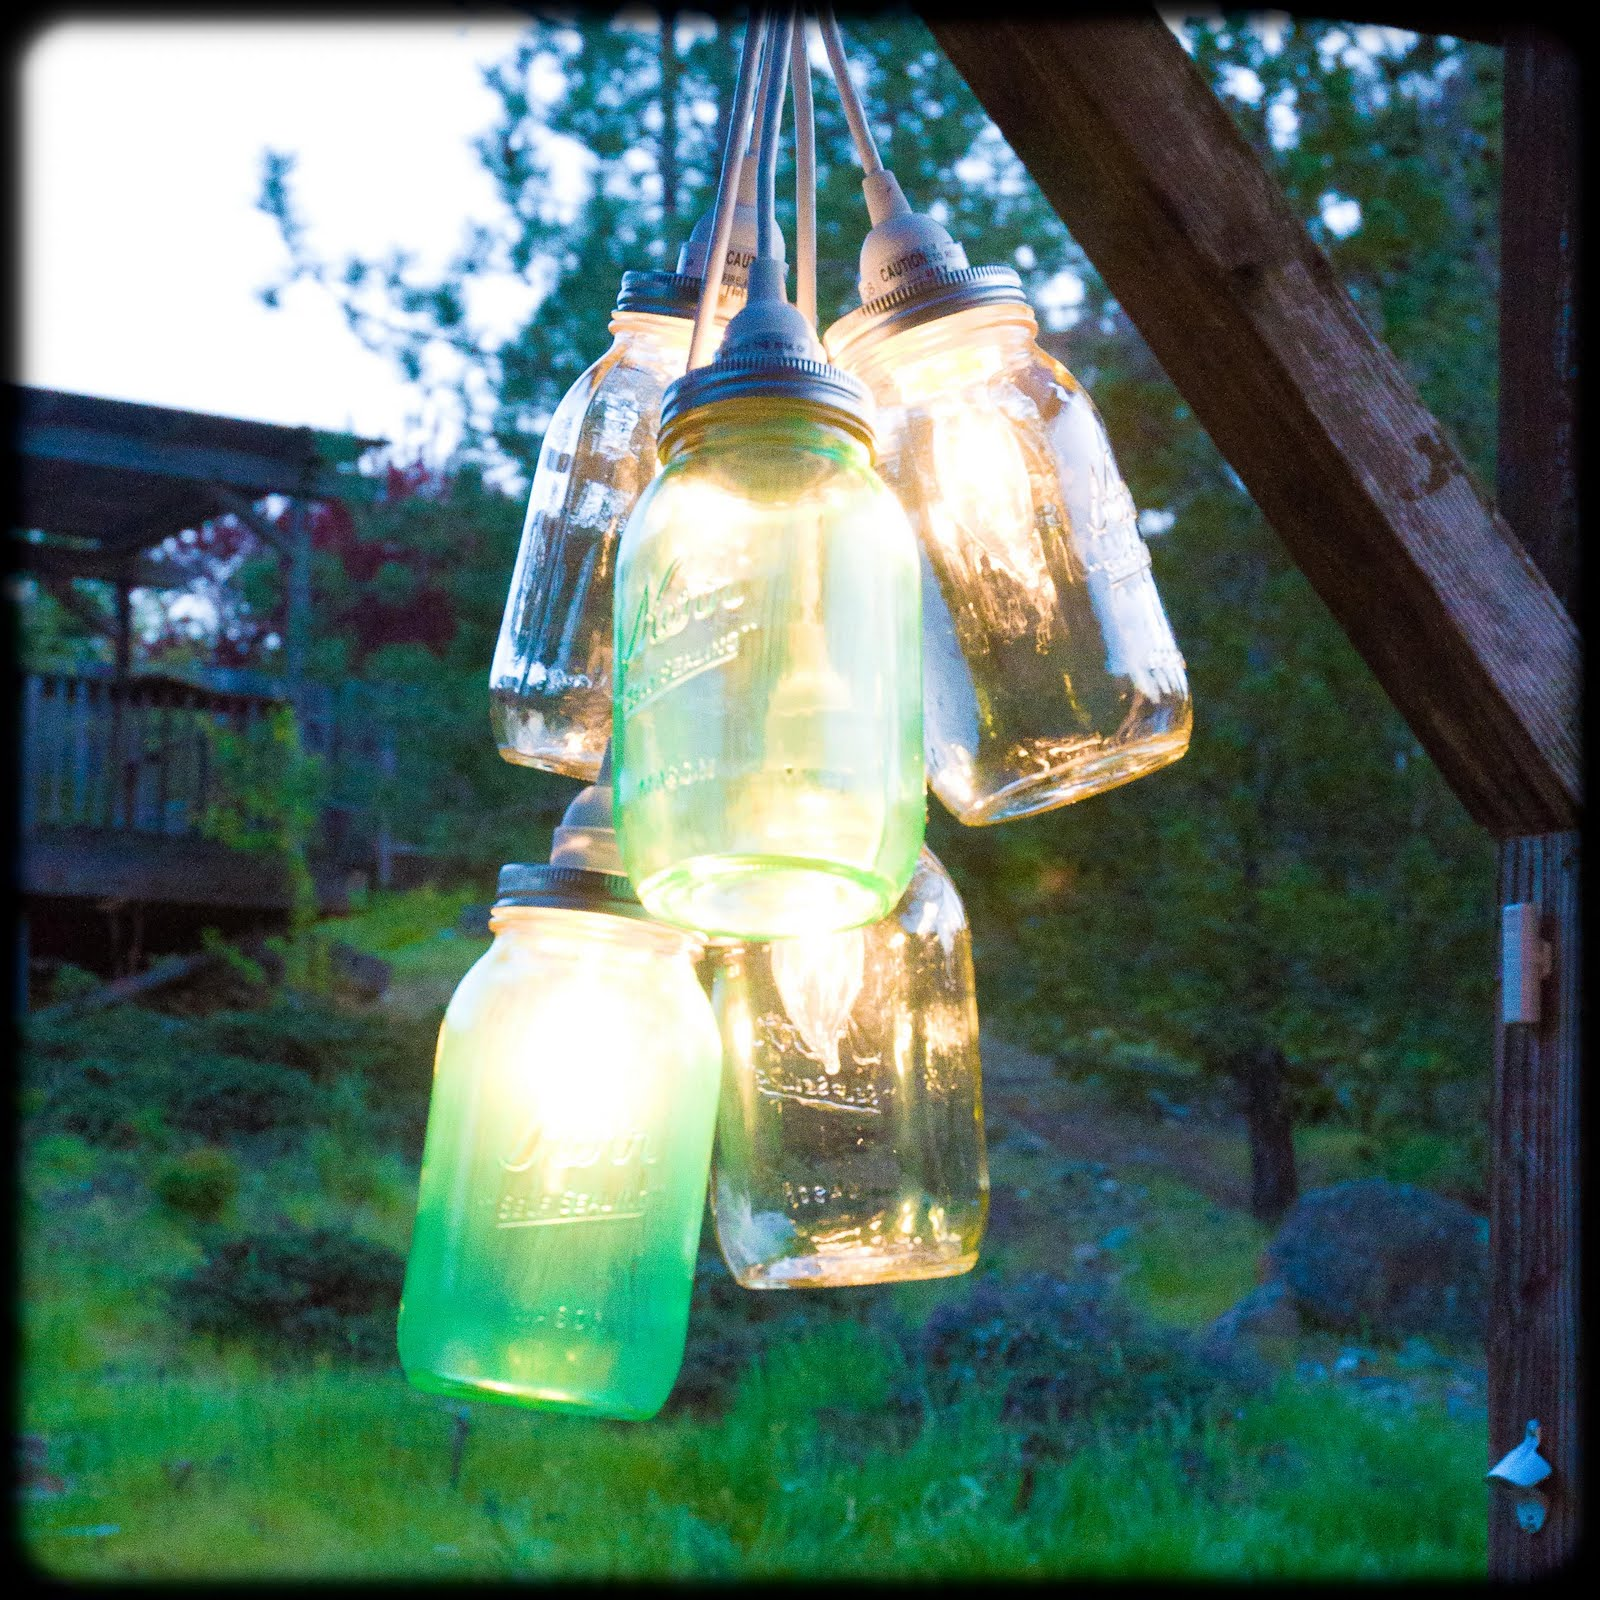 Patio Lights Diy: 12 DIY Outdoor Lighting Ideas